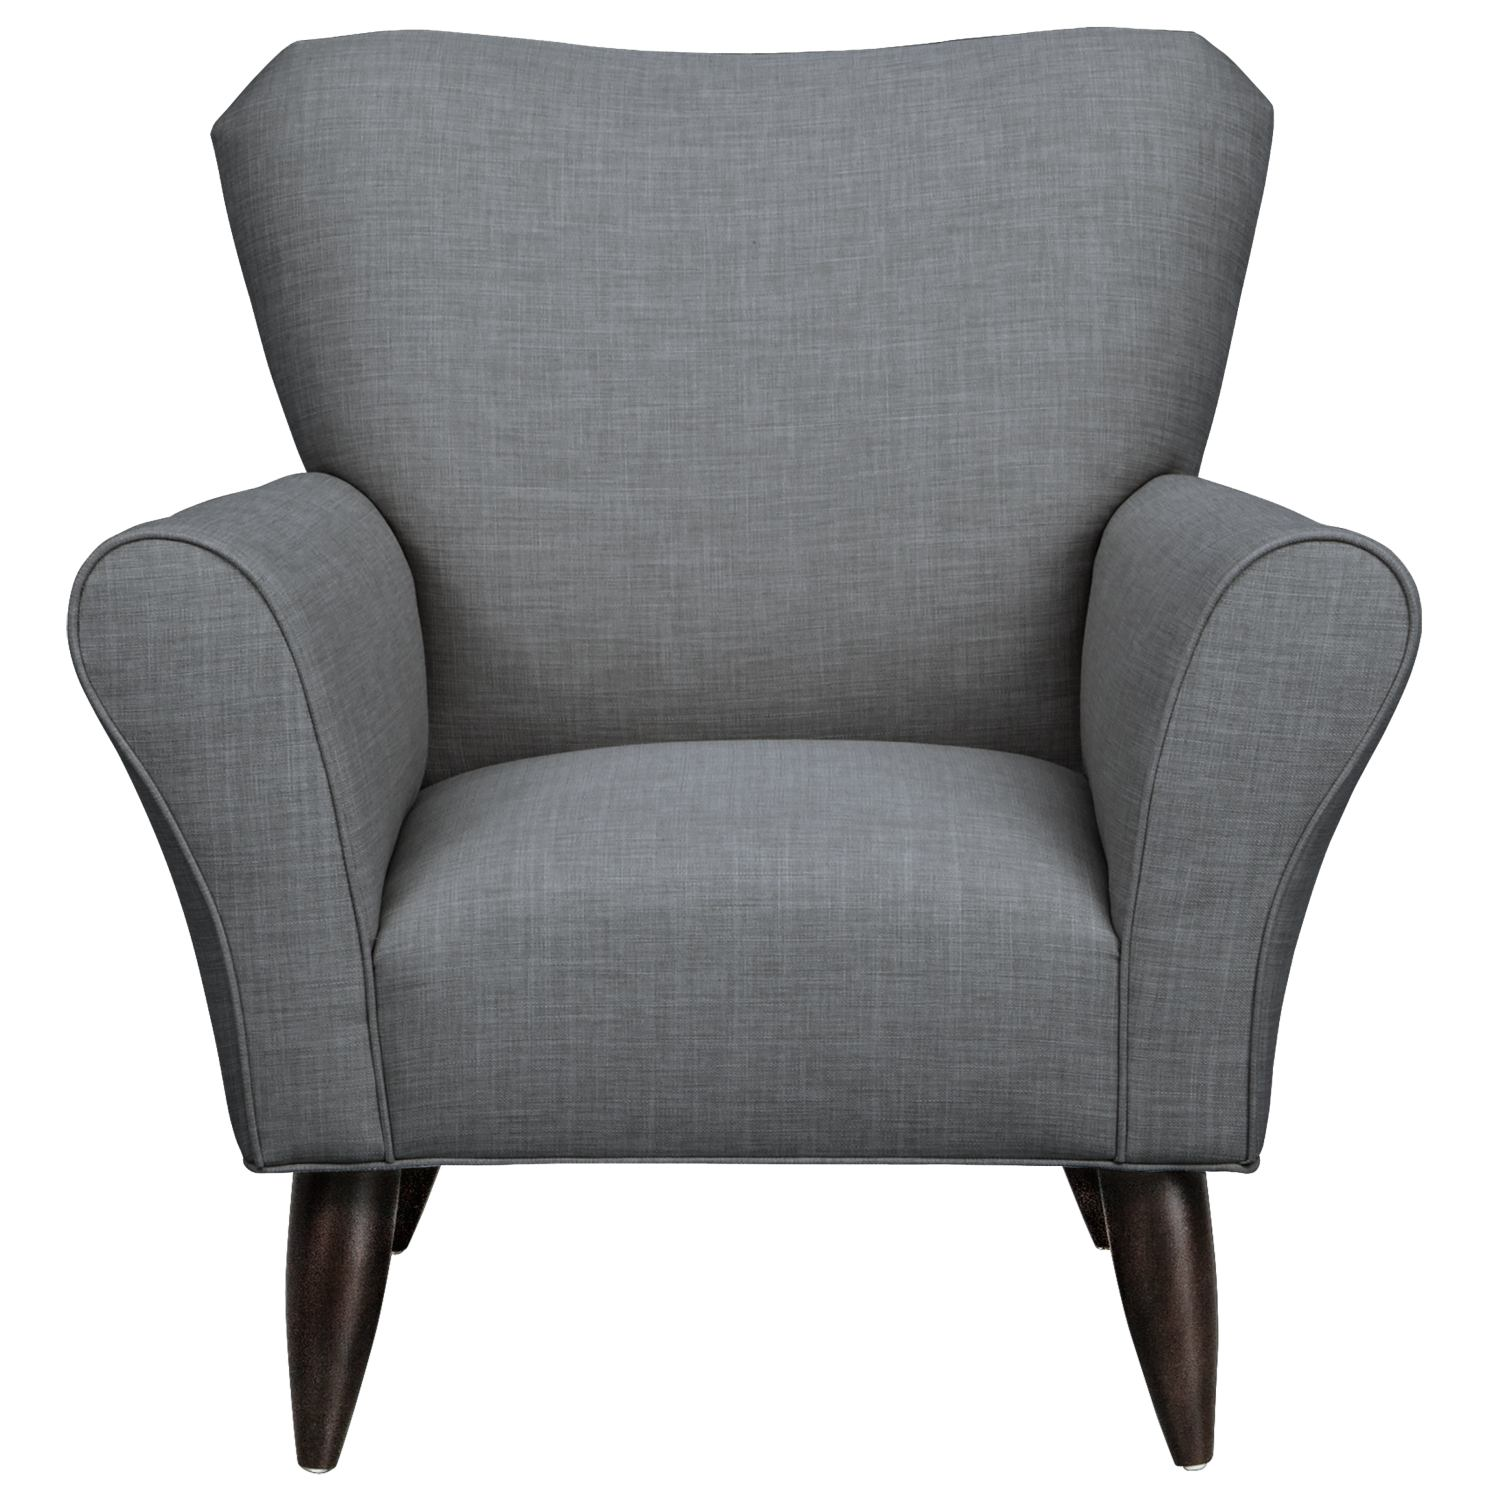 Living Room Furniture - Jessie Chair w/ Milford II Charcoal Fabric